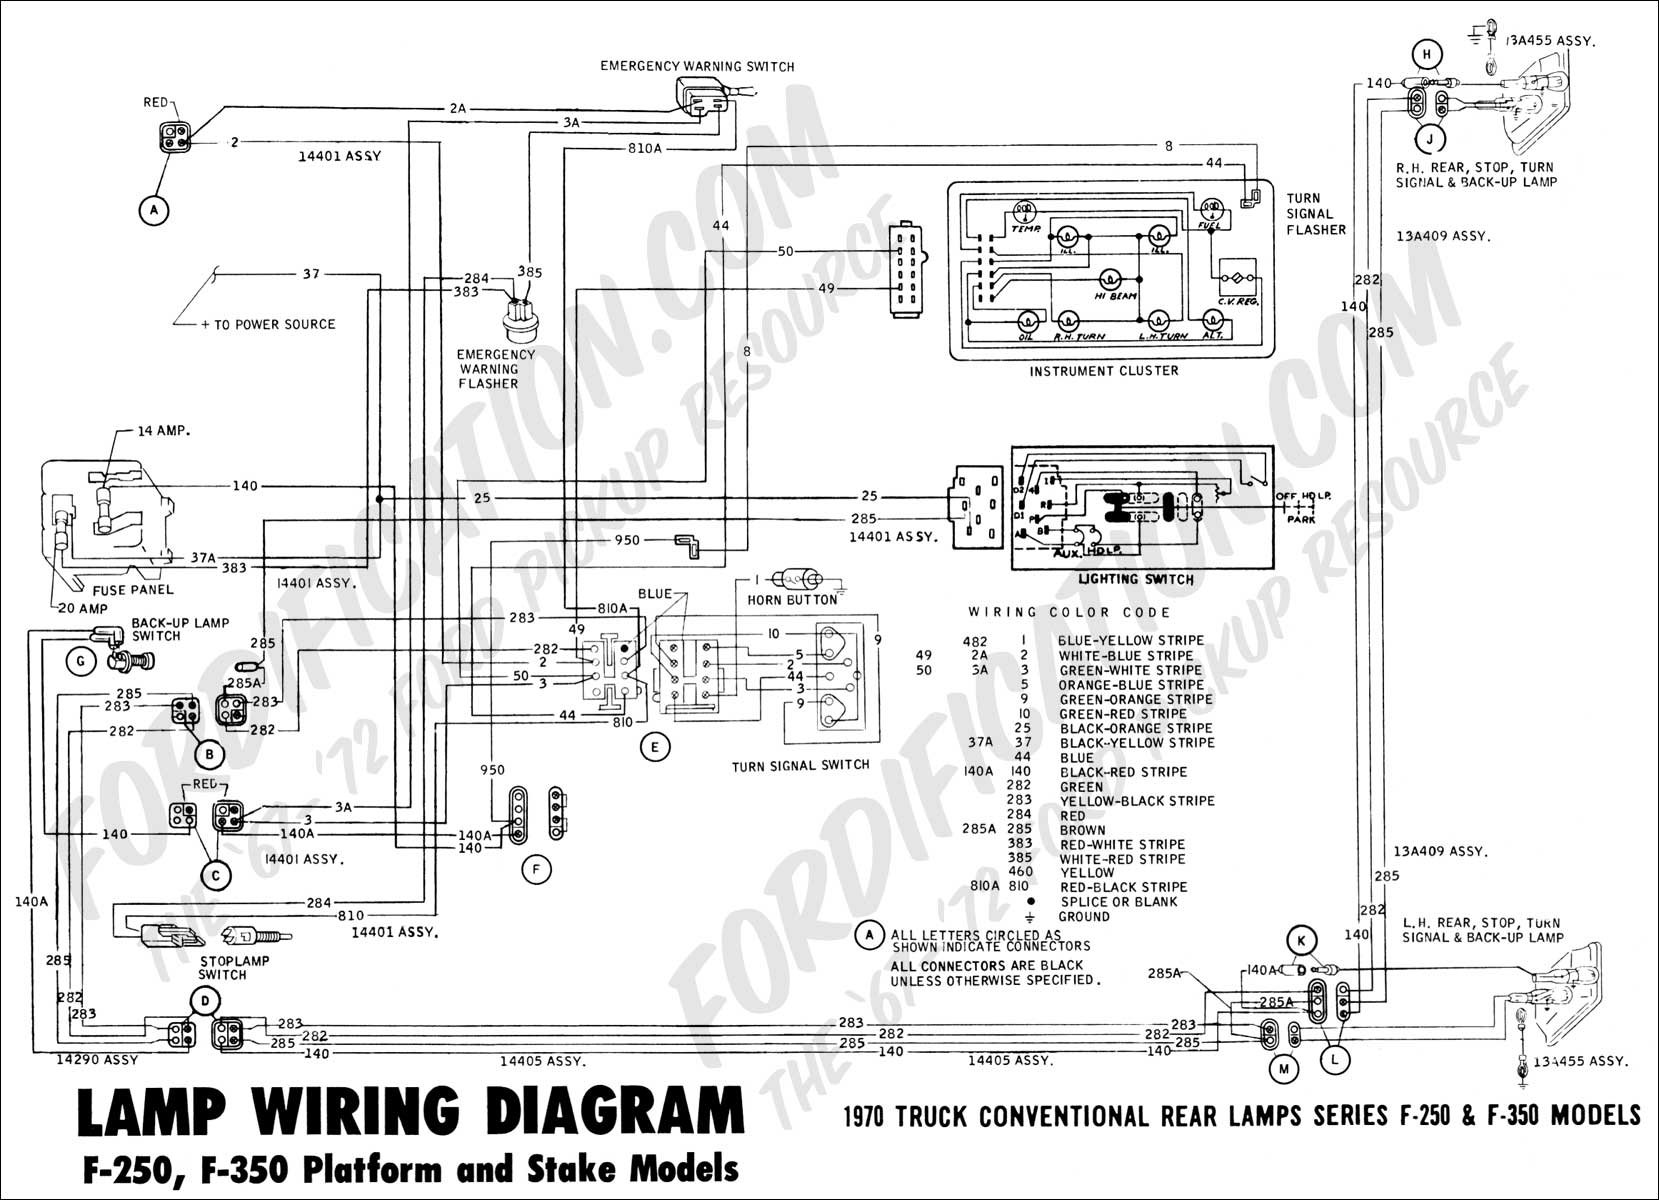 Ford Truck Technical Drawings And Schematics Section H Wiring Dual Coil Diagram 1970 F 250 350 Platform Stake Rear Lamp 01